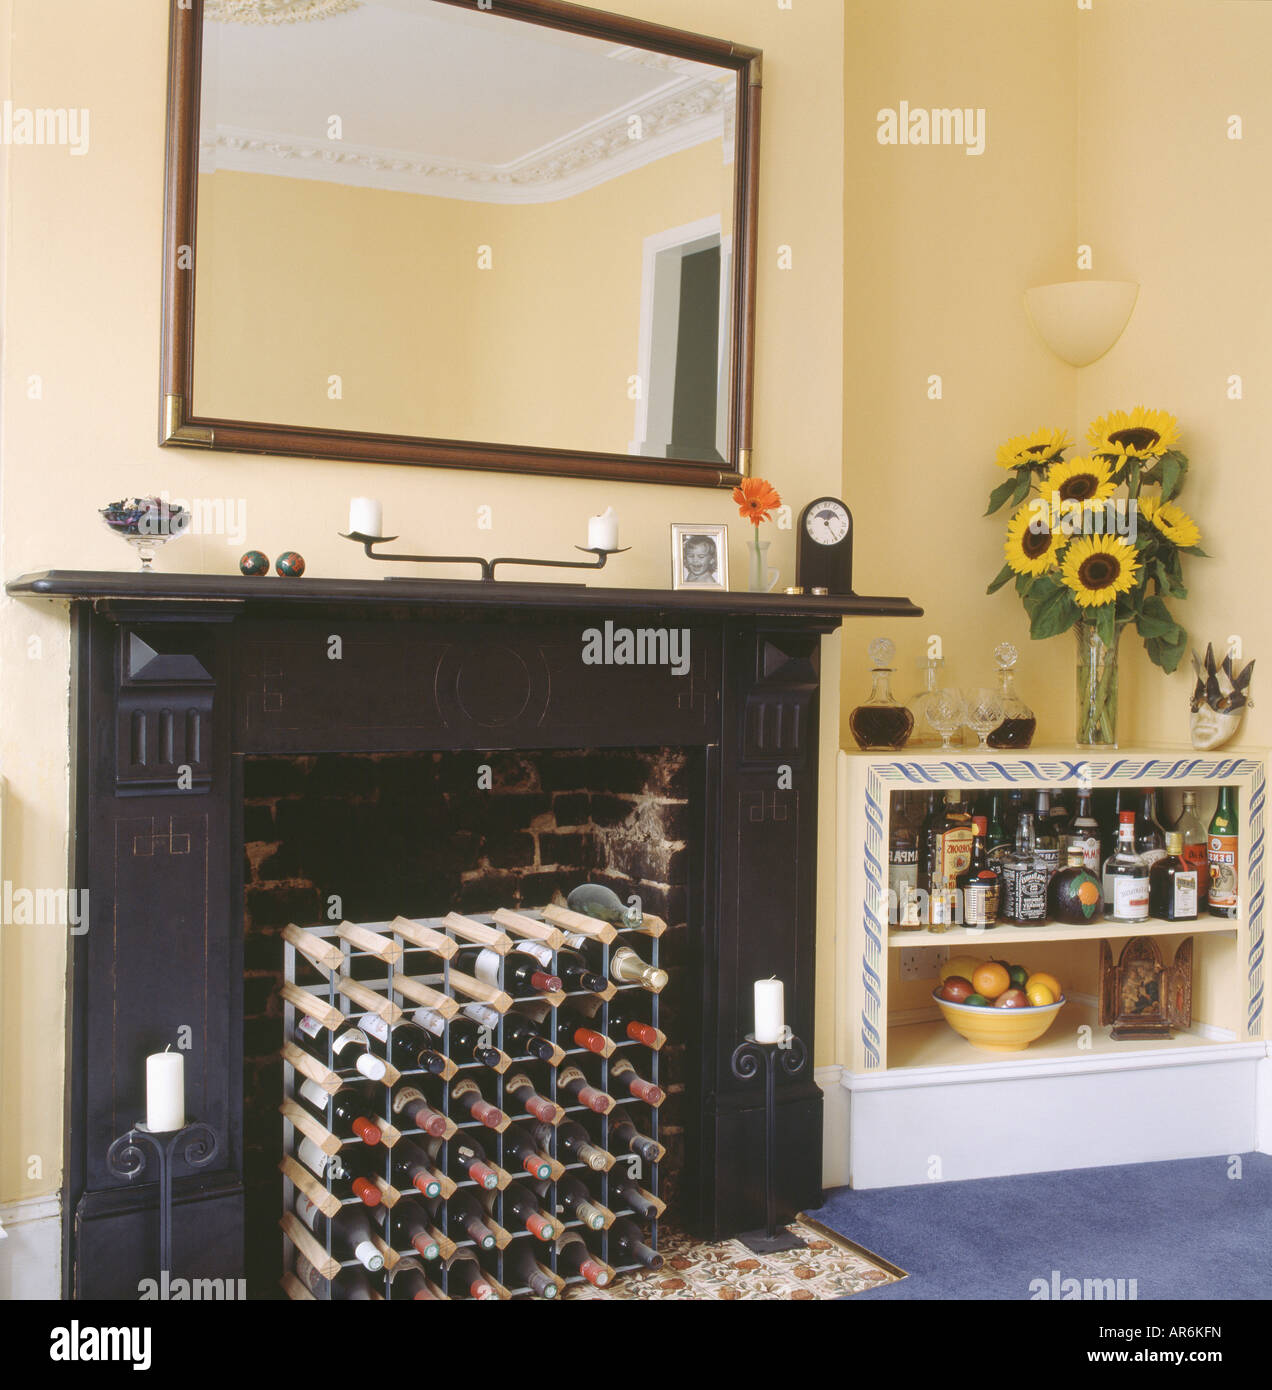 Etonnant Wine Storage In Fireplace Below Large Mirror In Pastel Yellow Dining Room  With Sunflowers And Liqueur Bottles On Shelving